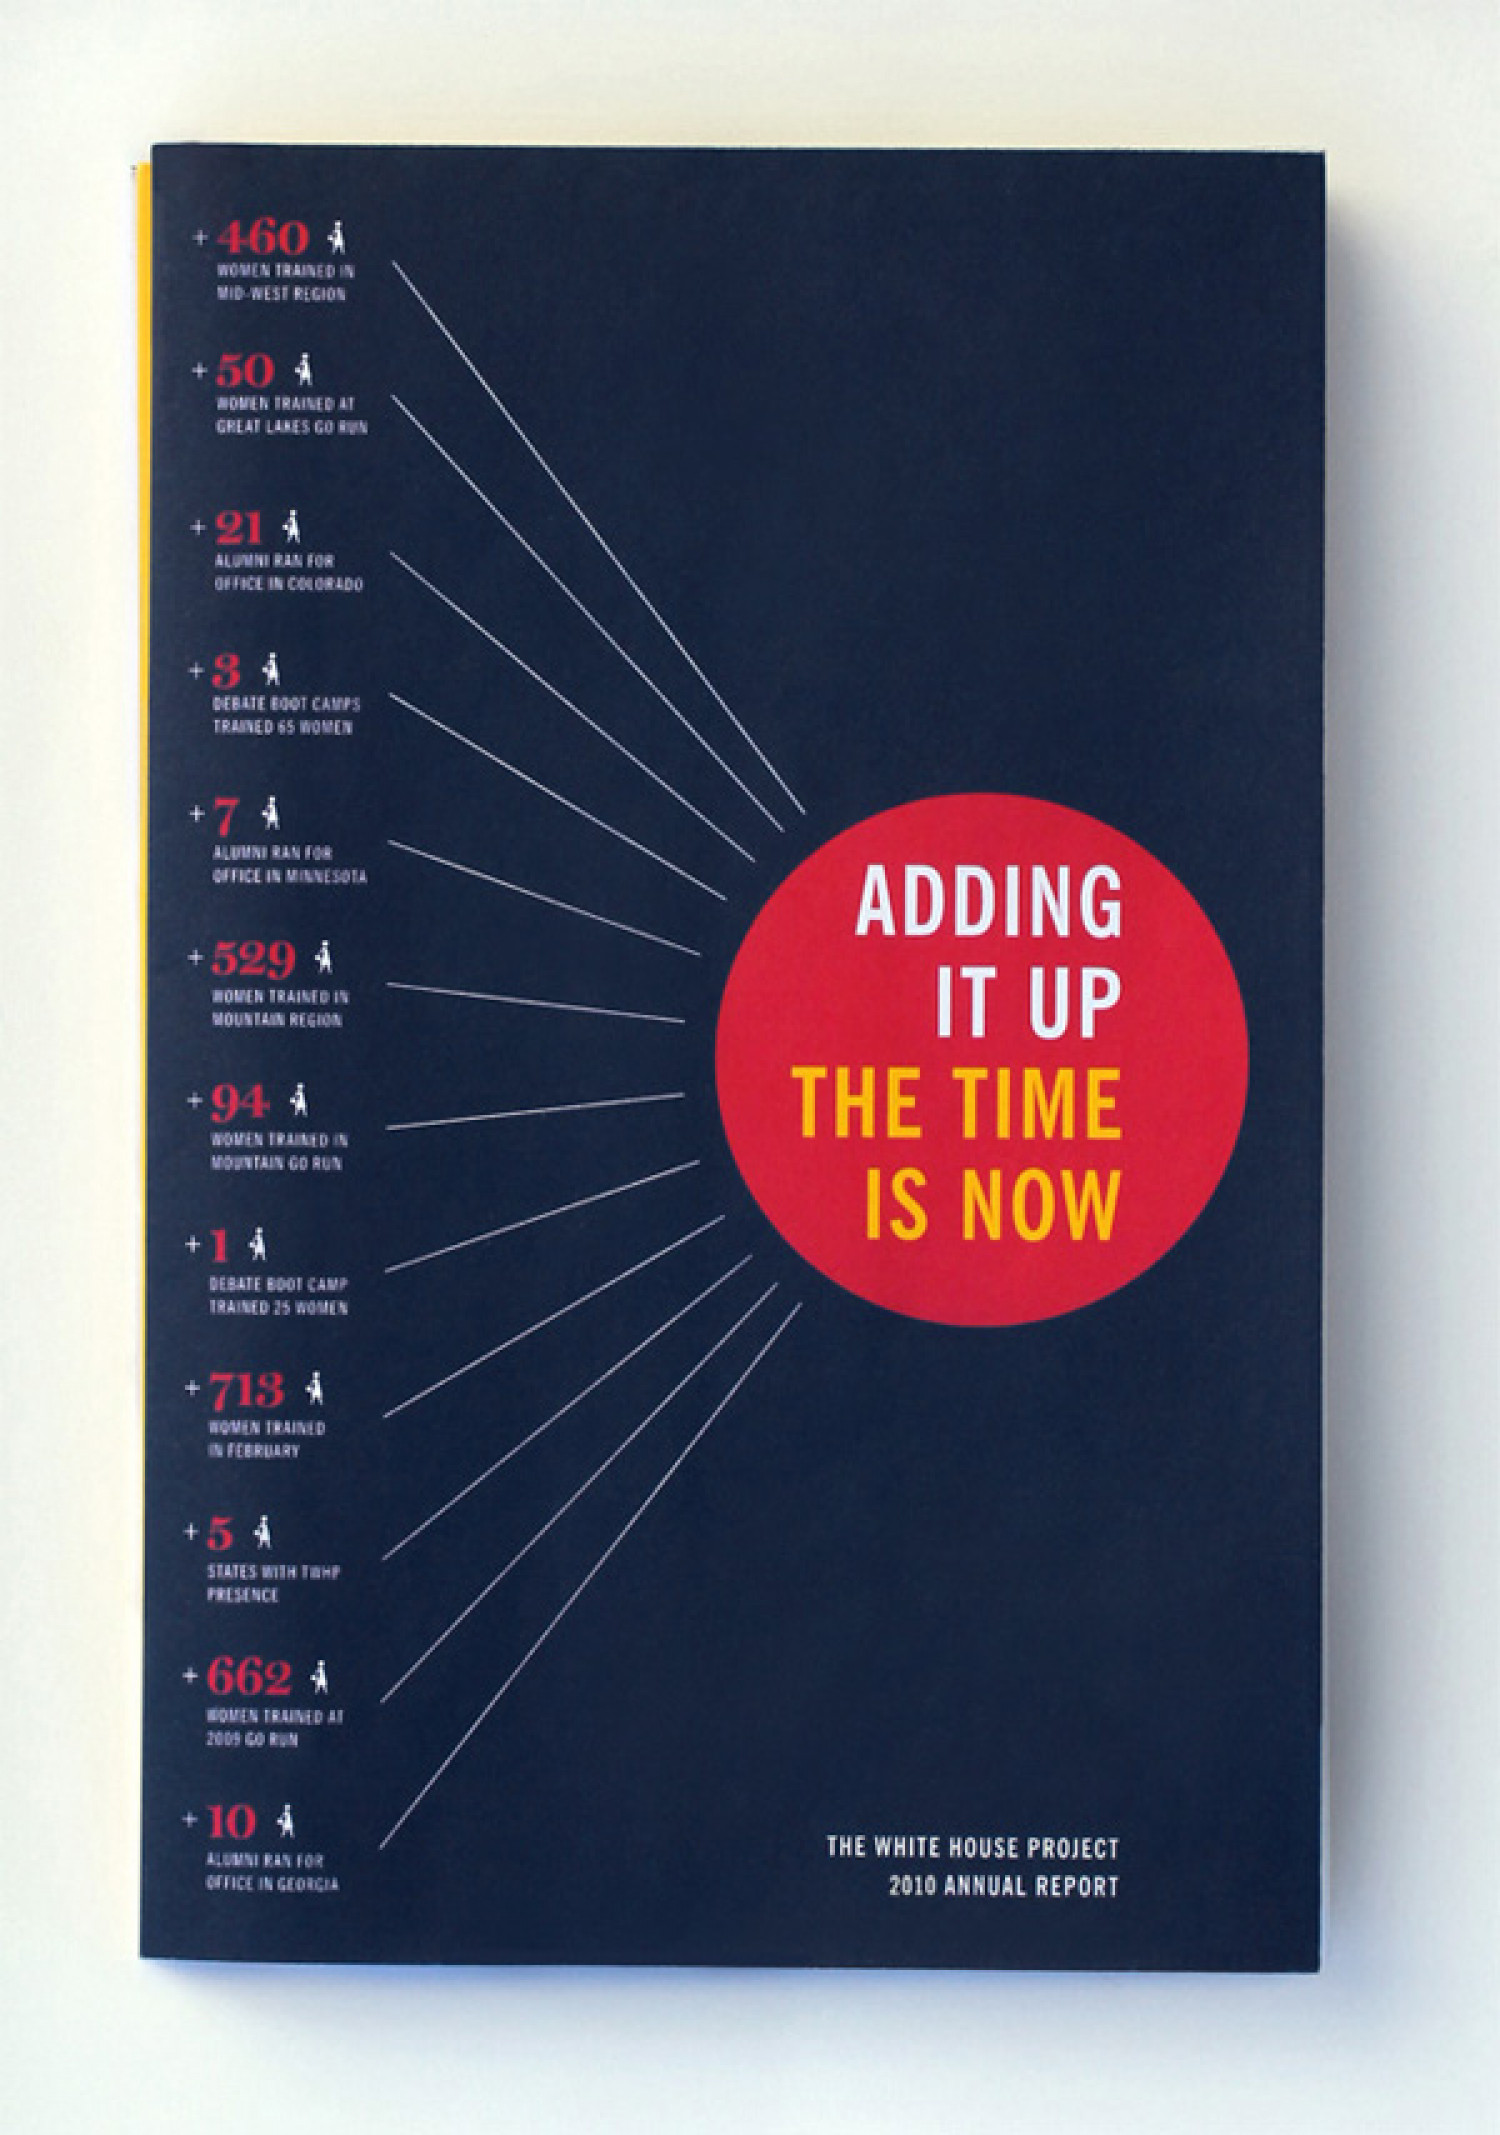 The White House Project Annual Report - FPO: For Print Only Infographic